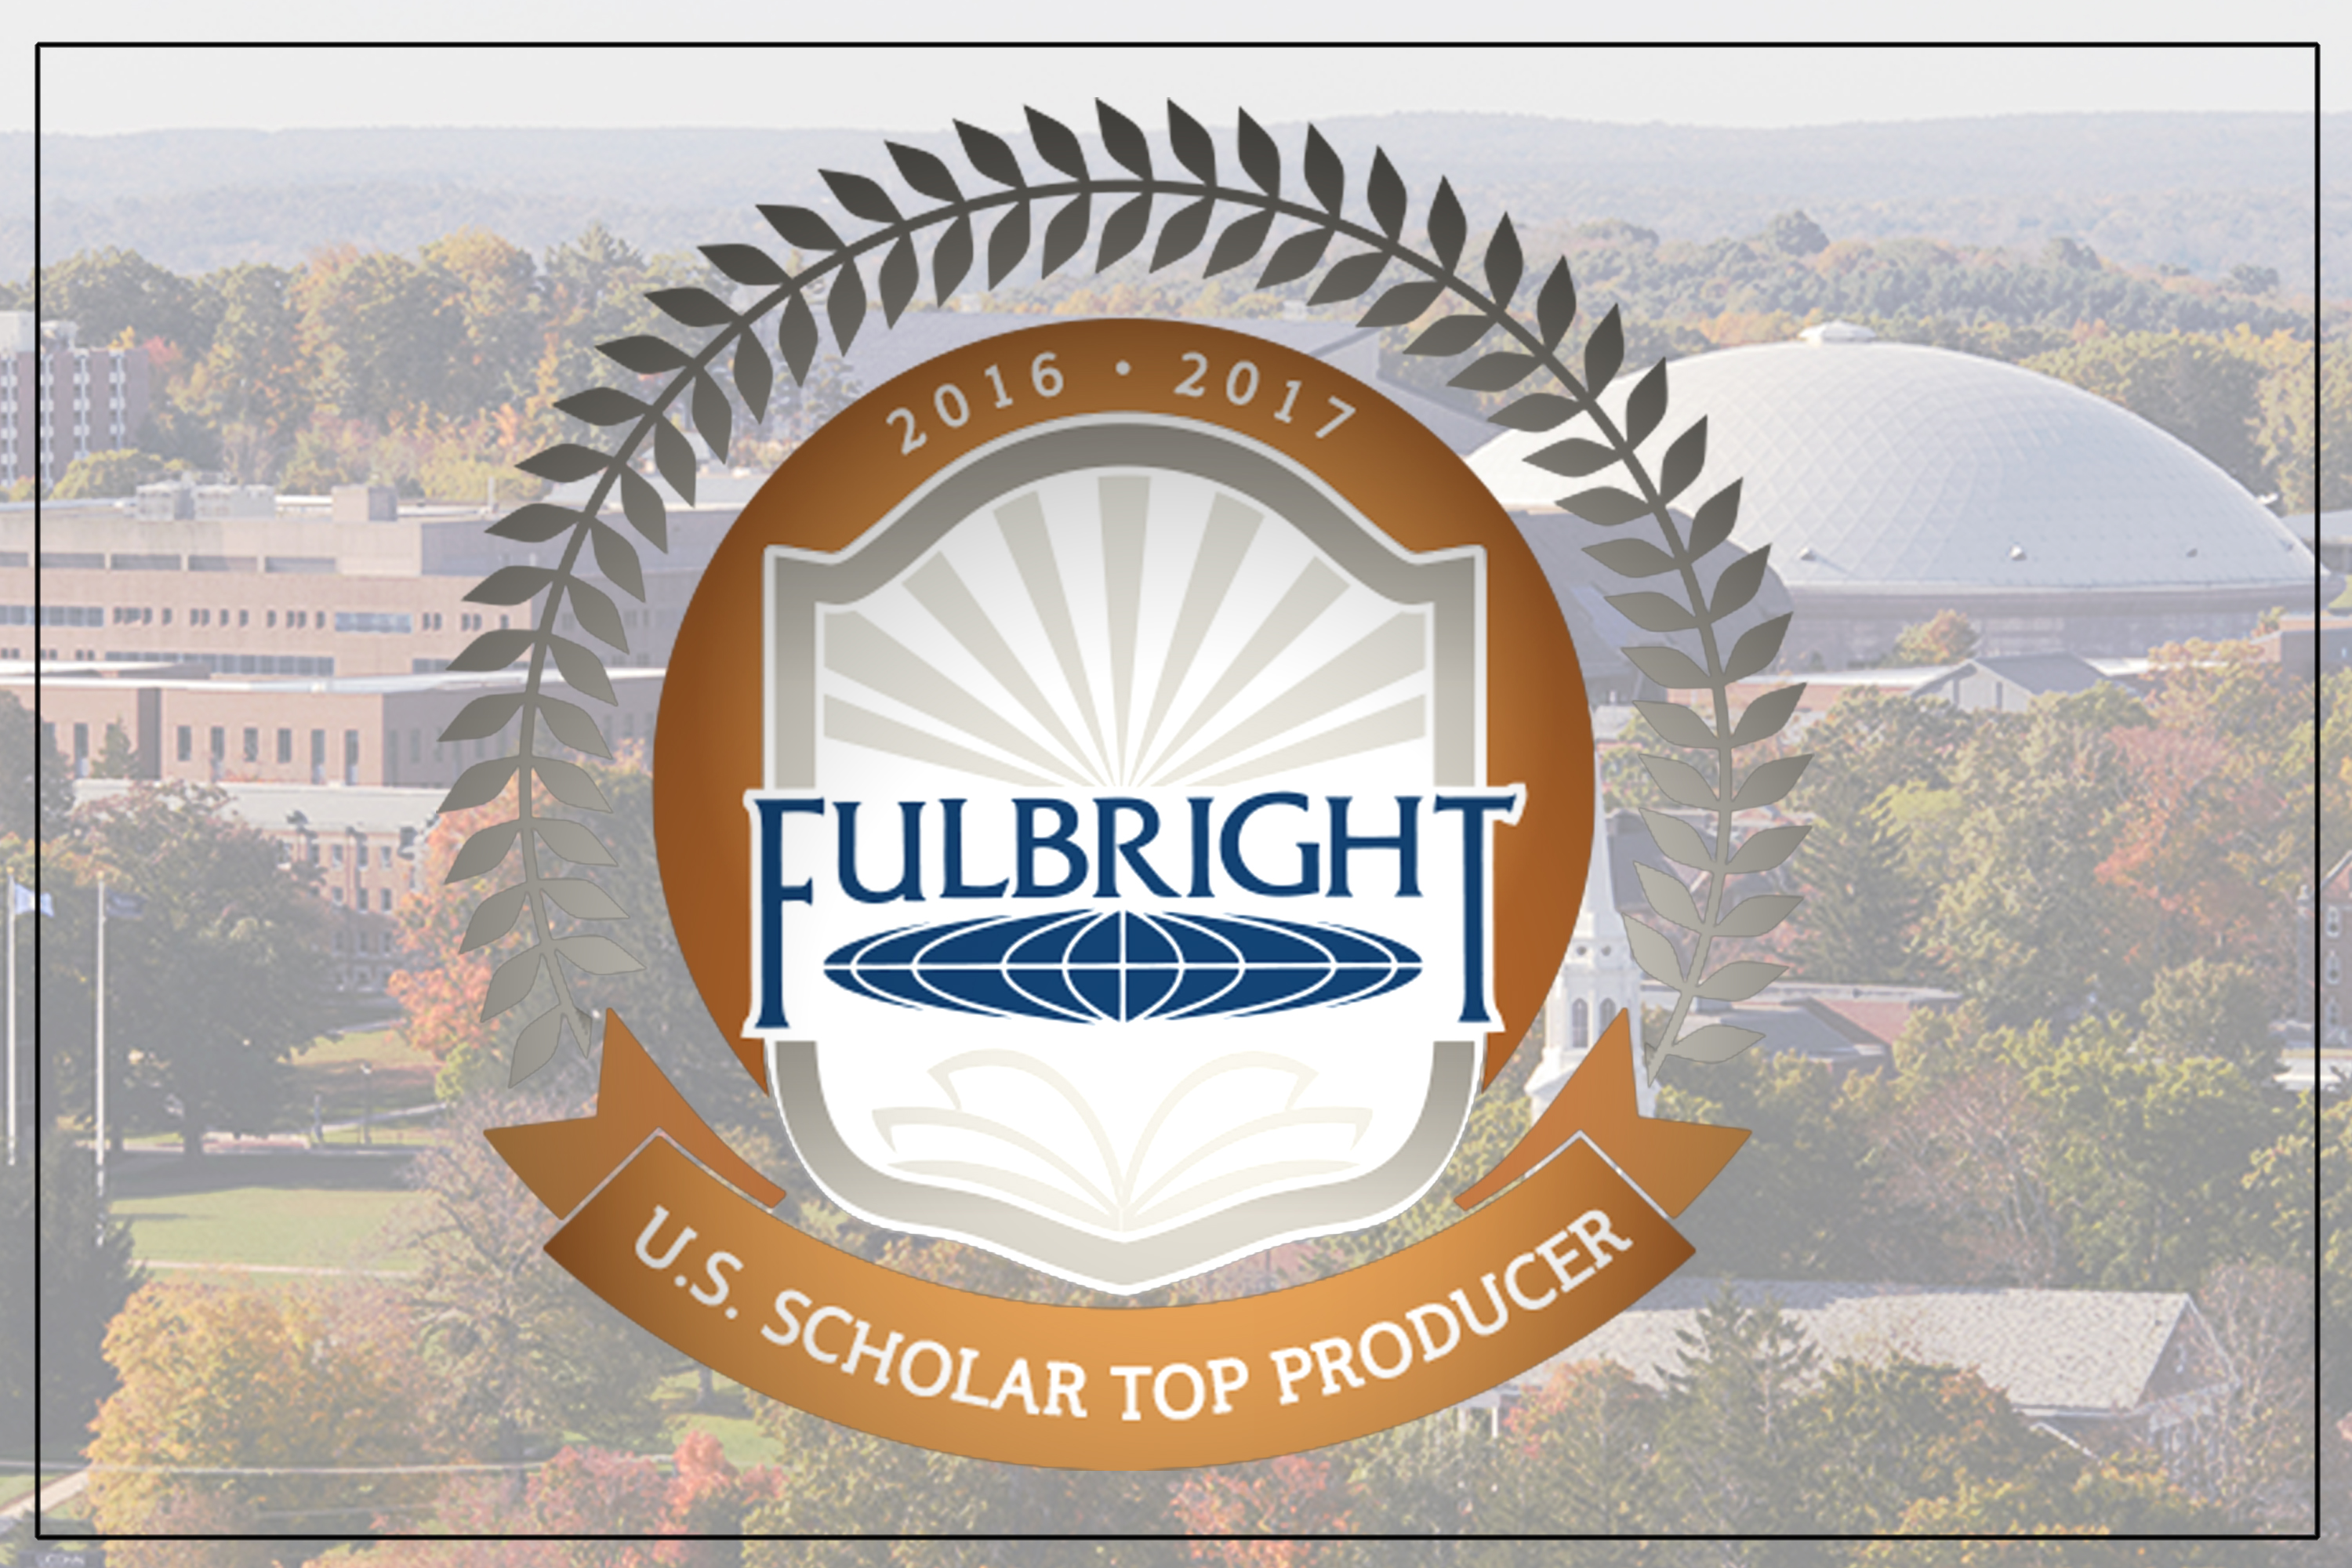 Seven UConn faculty members won Fulbright Scholarships to lecture and research abroad in 2016-17.